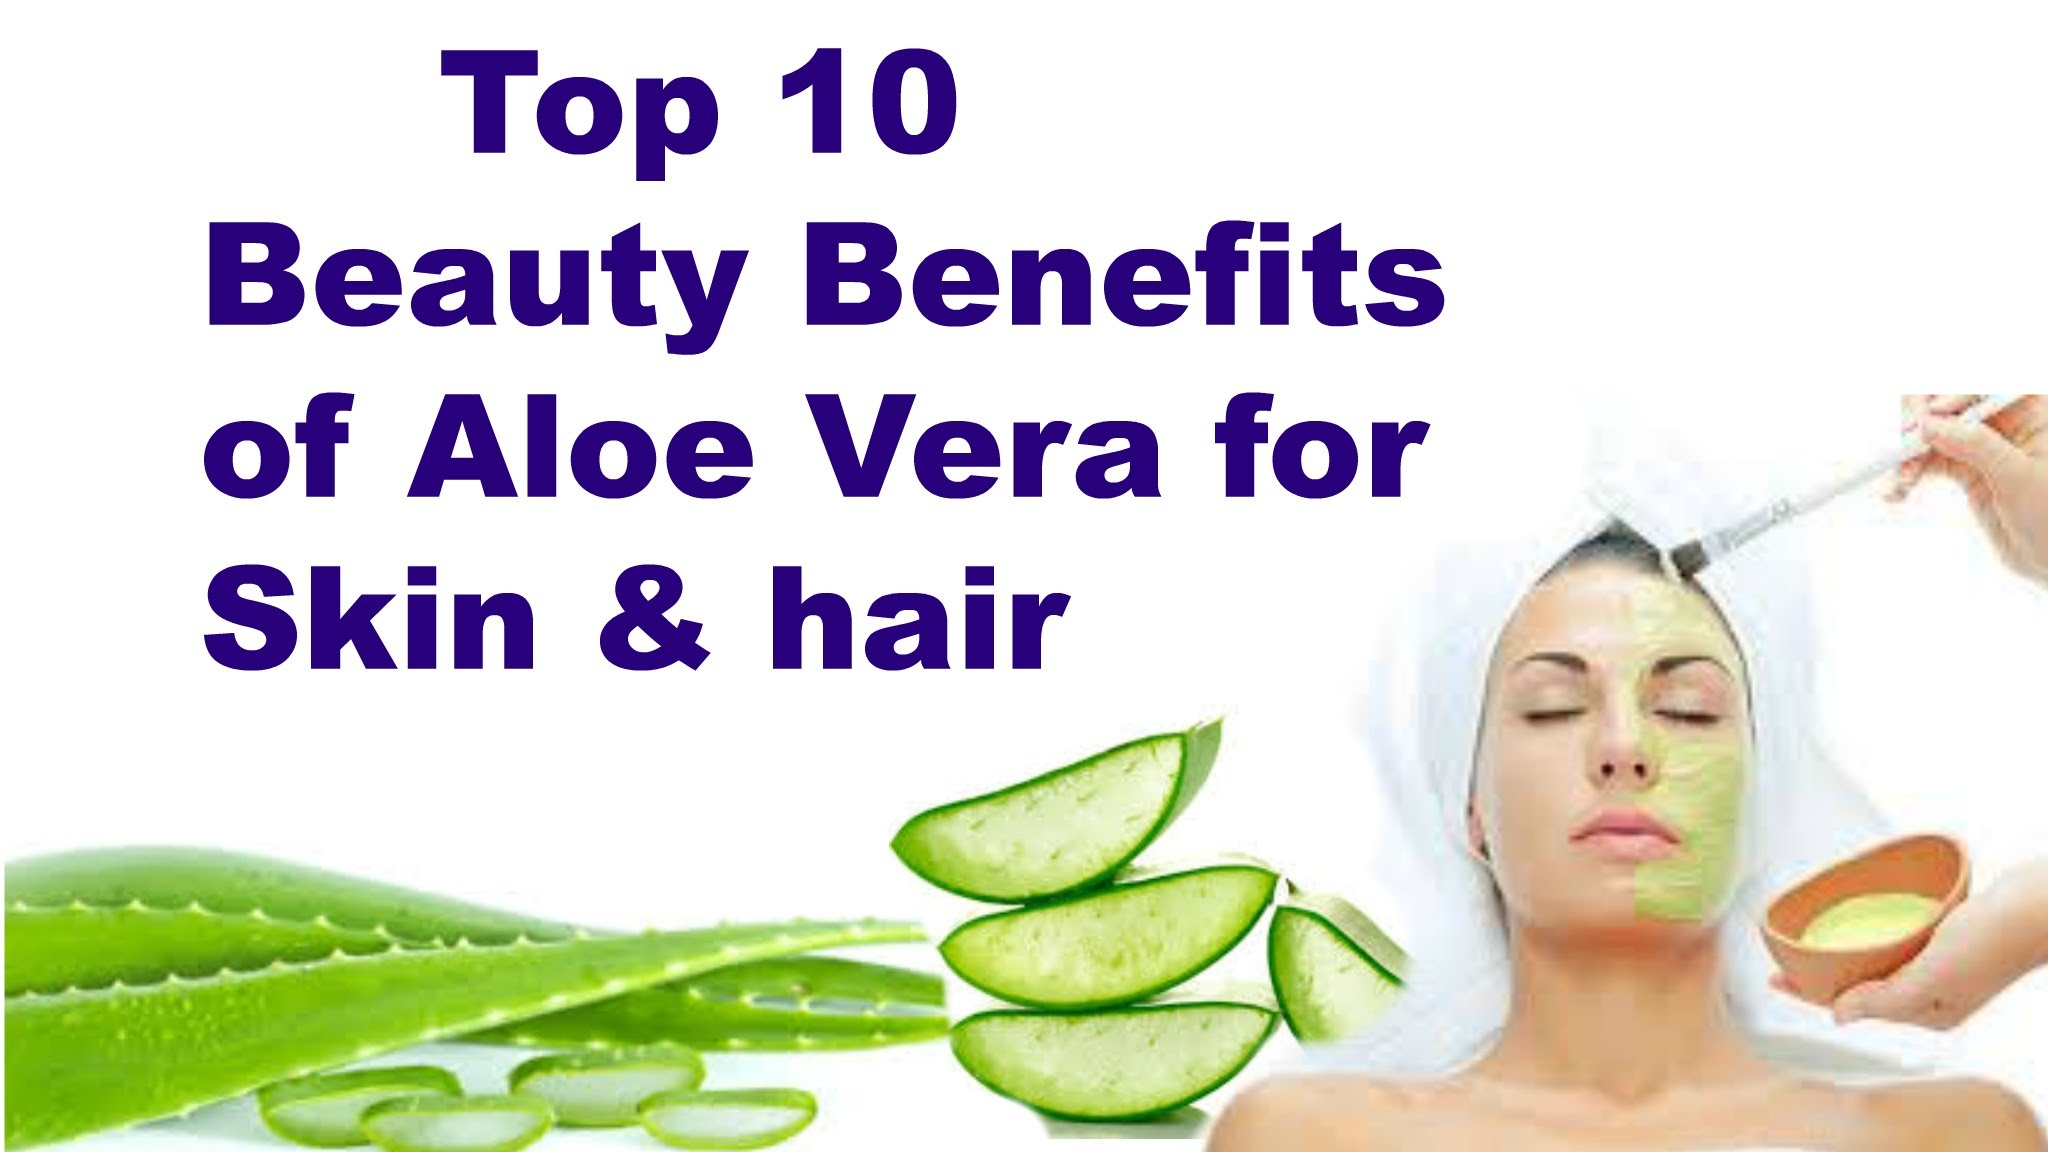 The Benefits Of Using Aloe Vera For Your Face And Skin